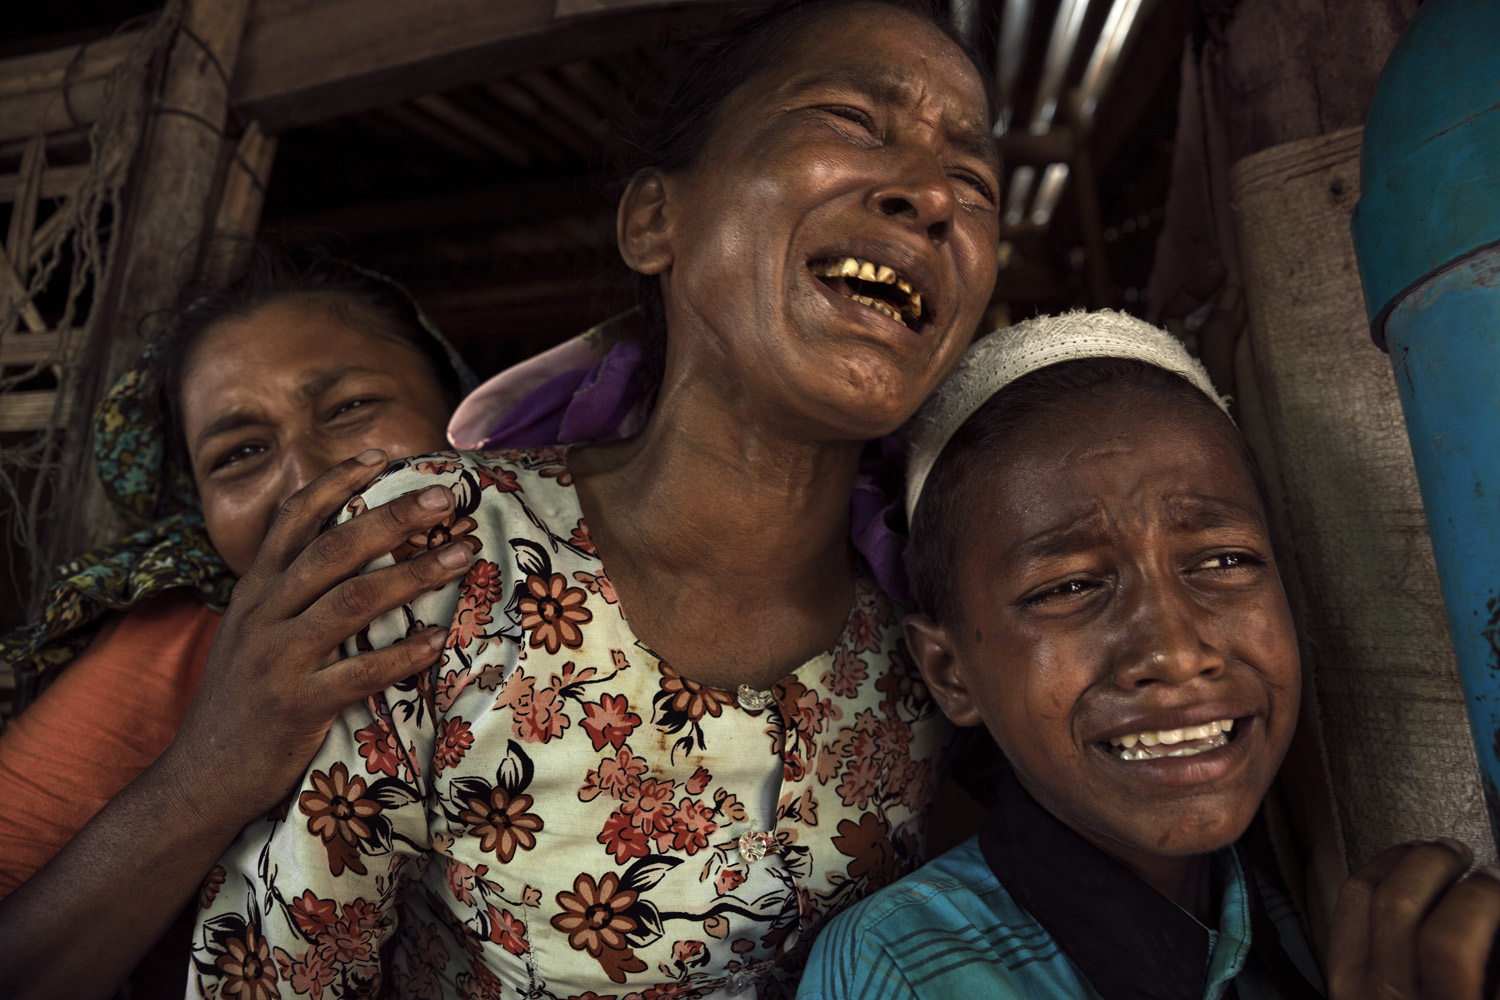 Relatives weep at the funeral of a woman who died at 35 of a stomach disease; she left five children behind.